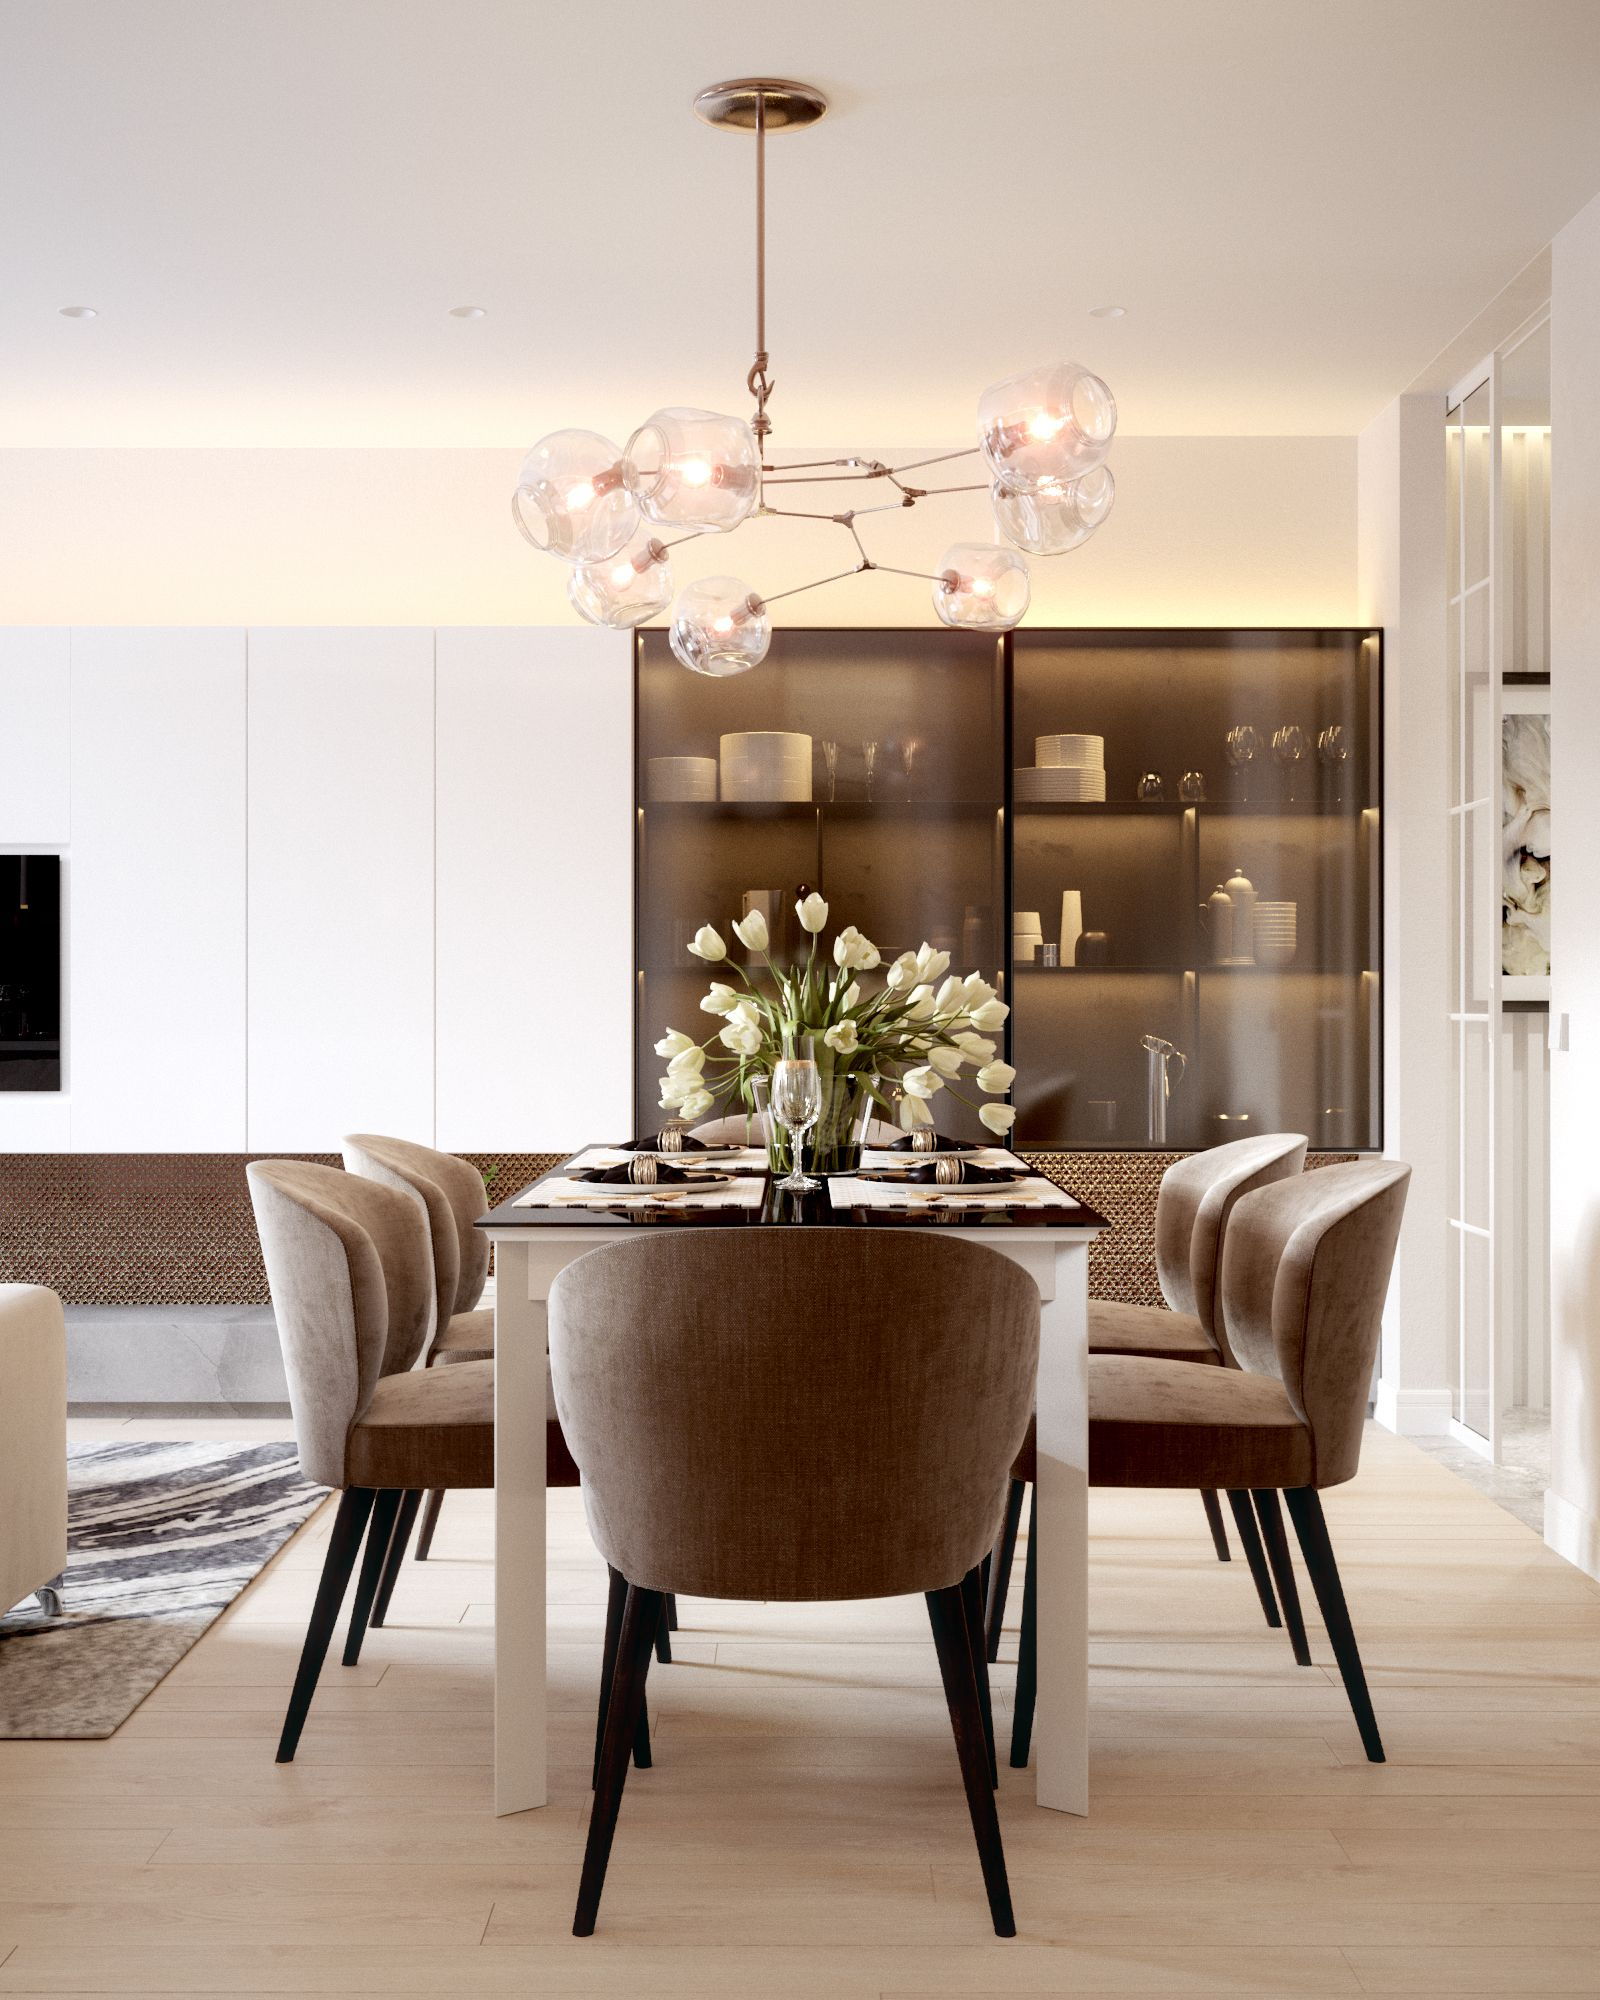 70 Modern Dining Room Ideas For 2019: Visualization: Maxim TiabysDesigner: Nastya Ivanchuk For